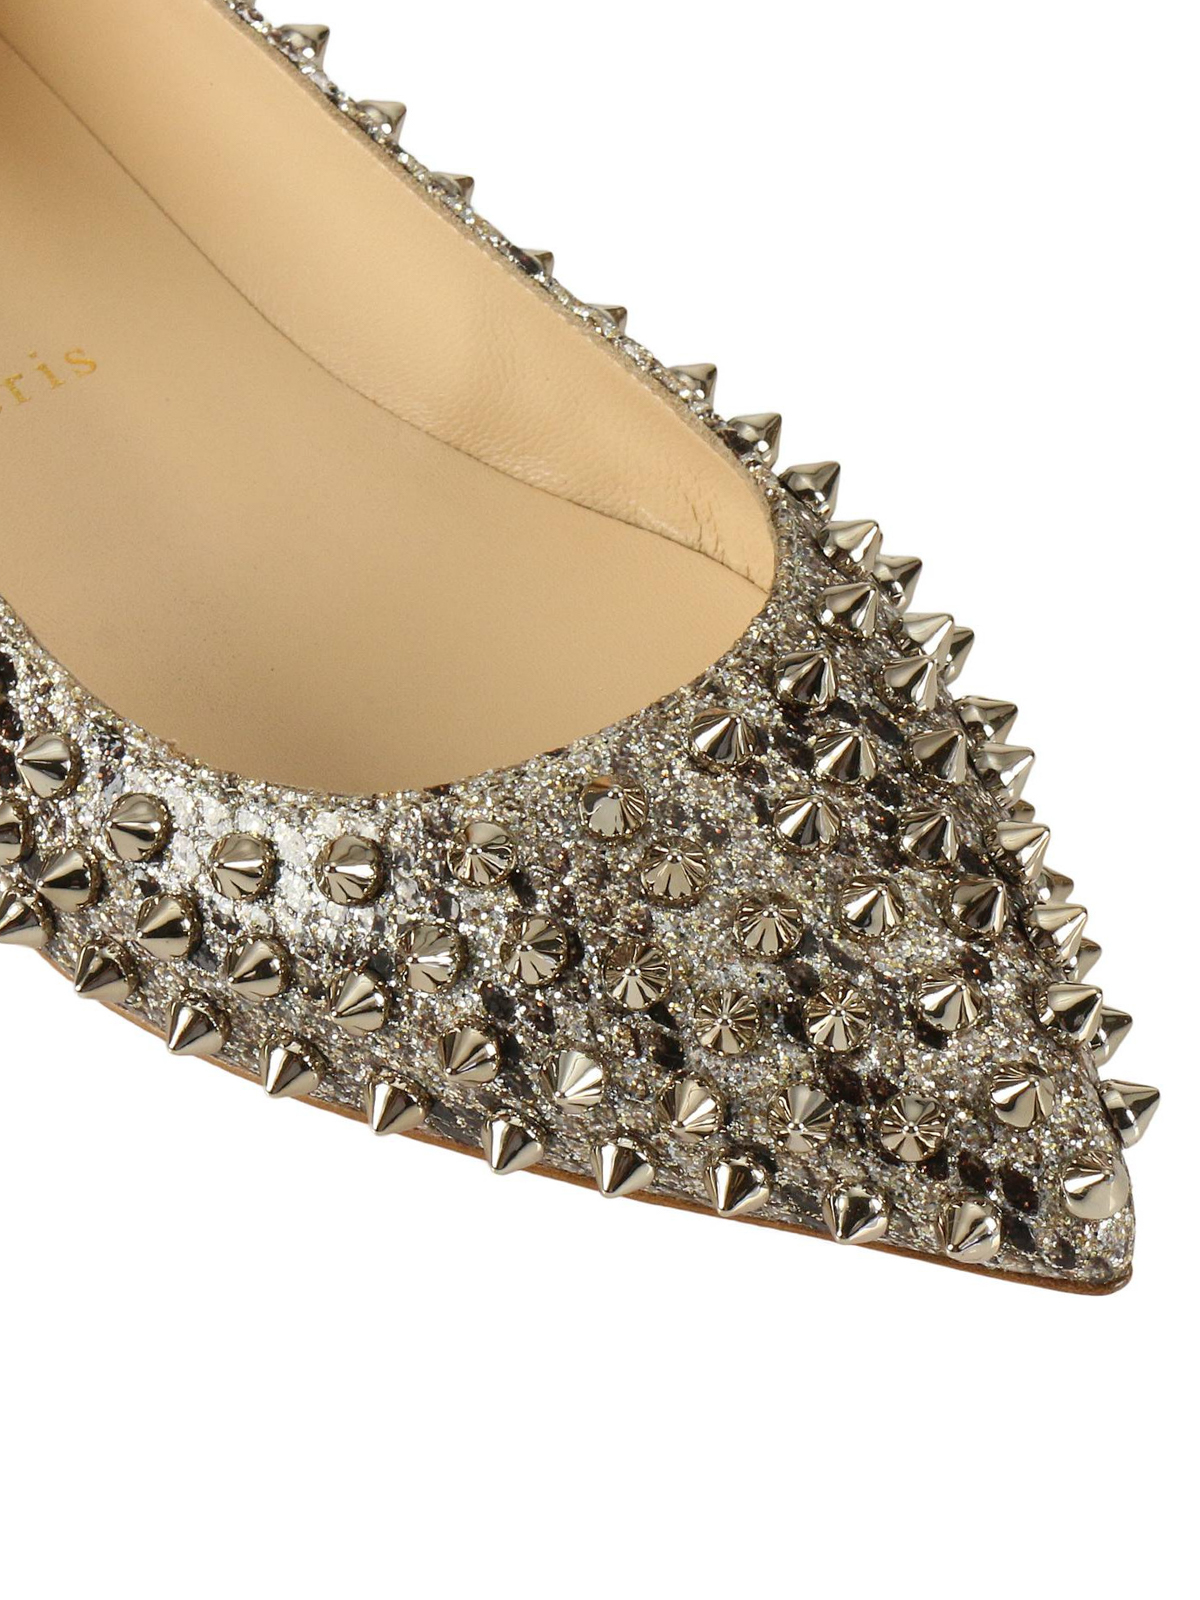 buy online 8f0e4 053a3 Christian Louboutin - Follies Spikes ayers leather flats ...